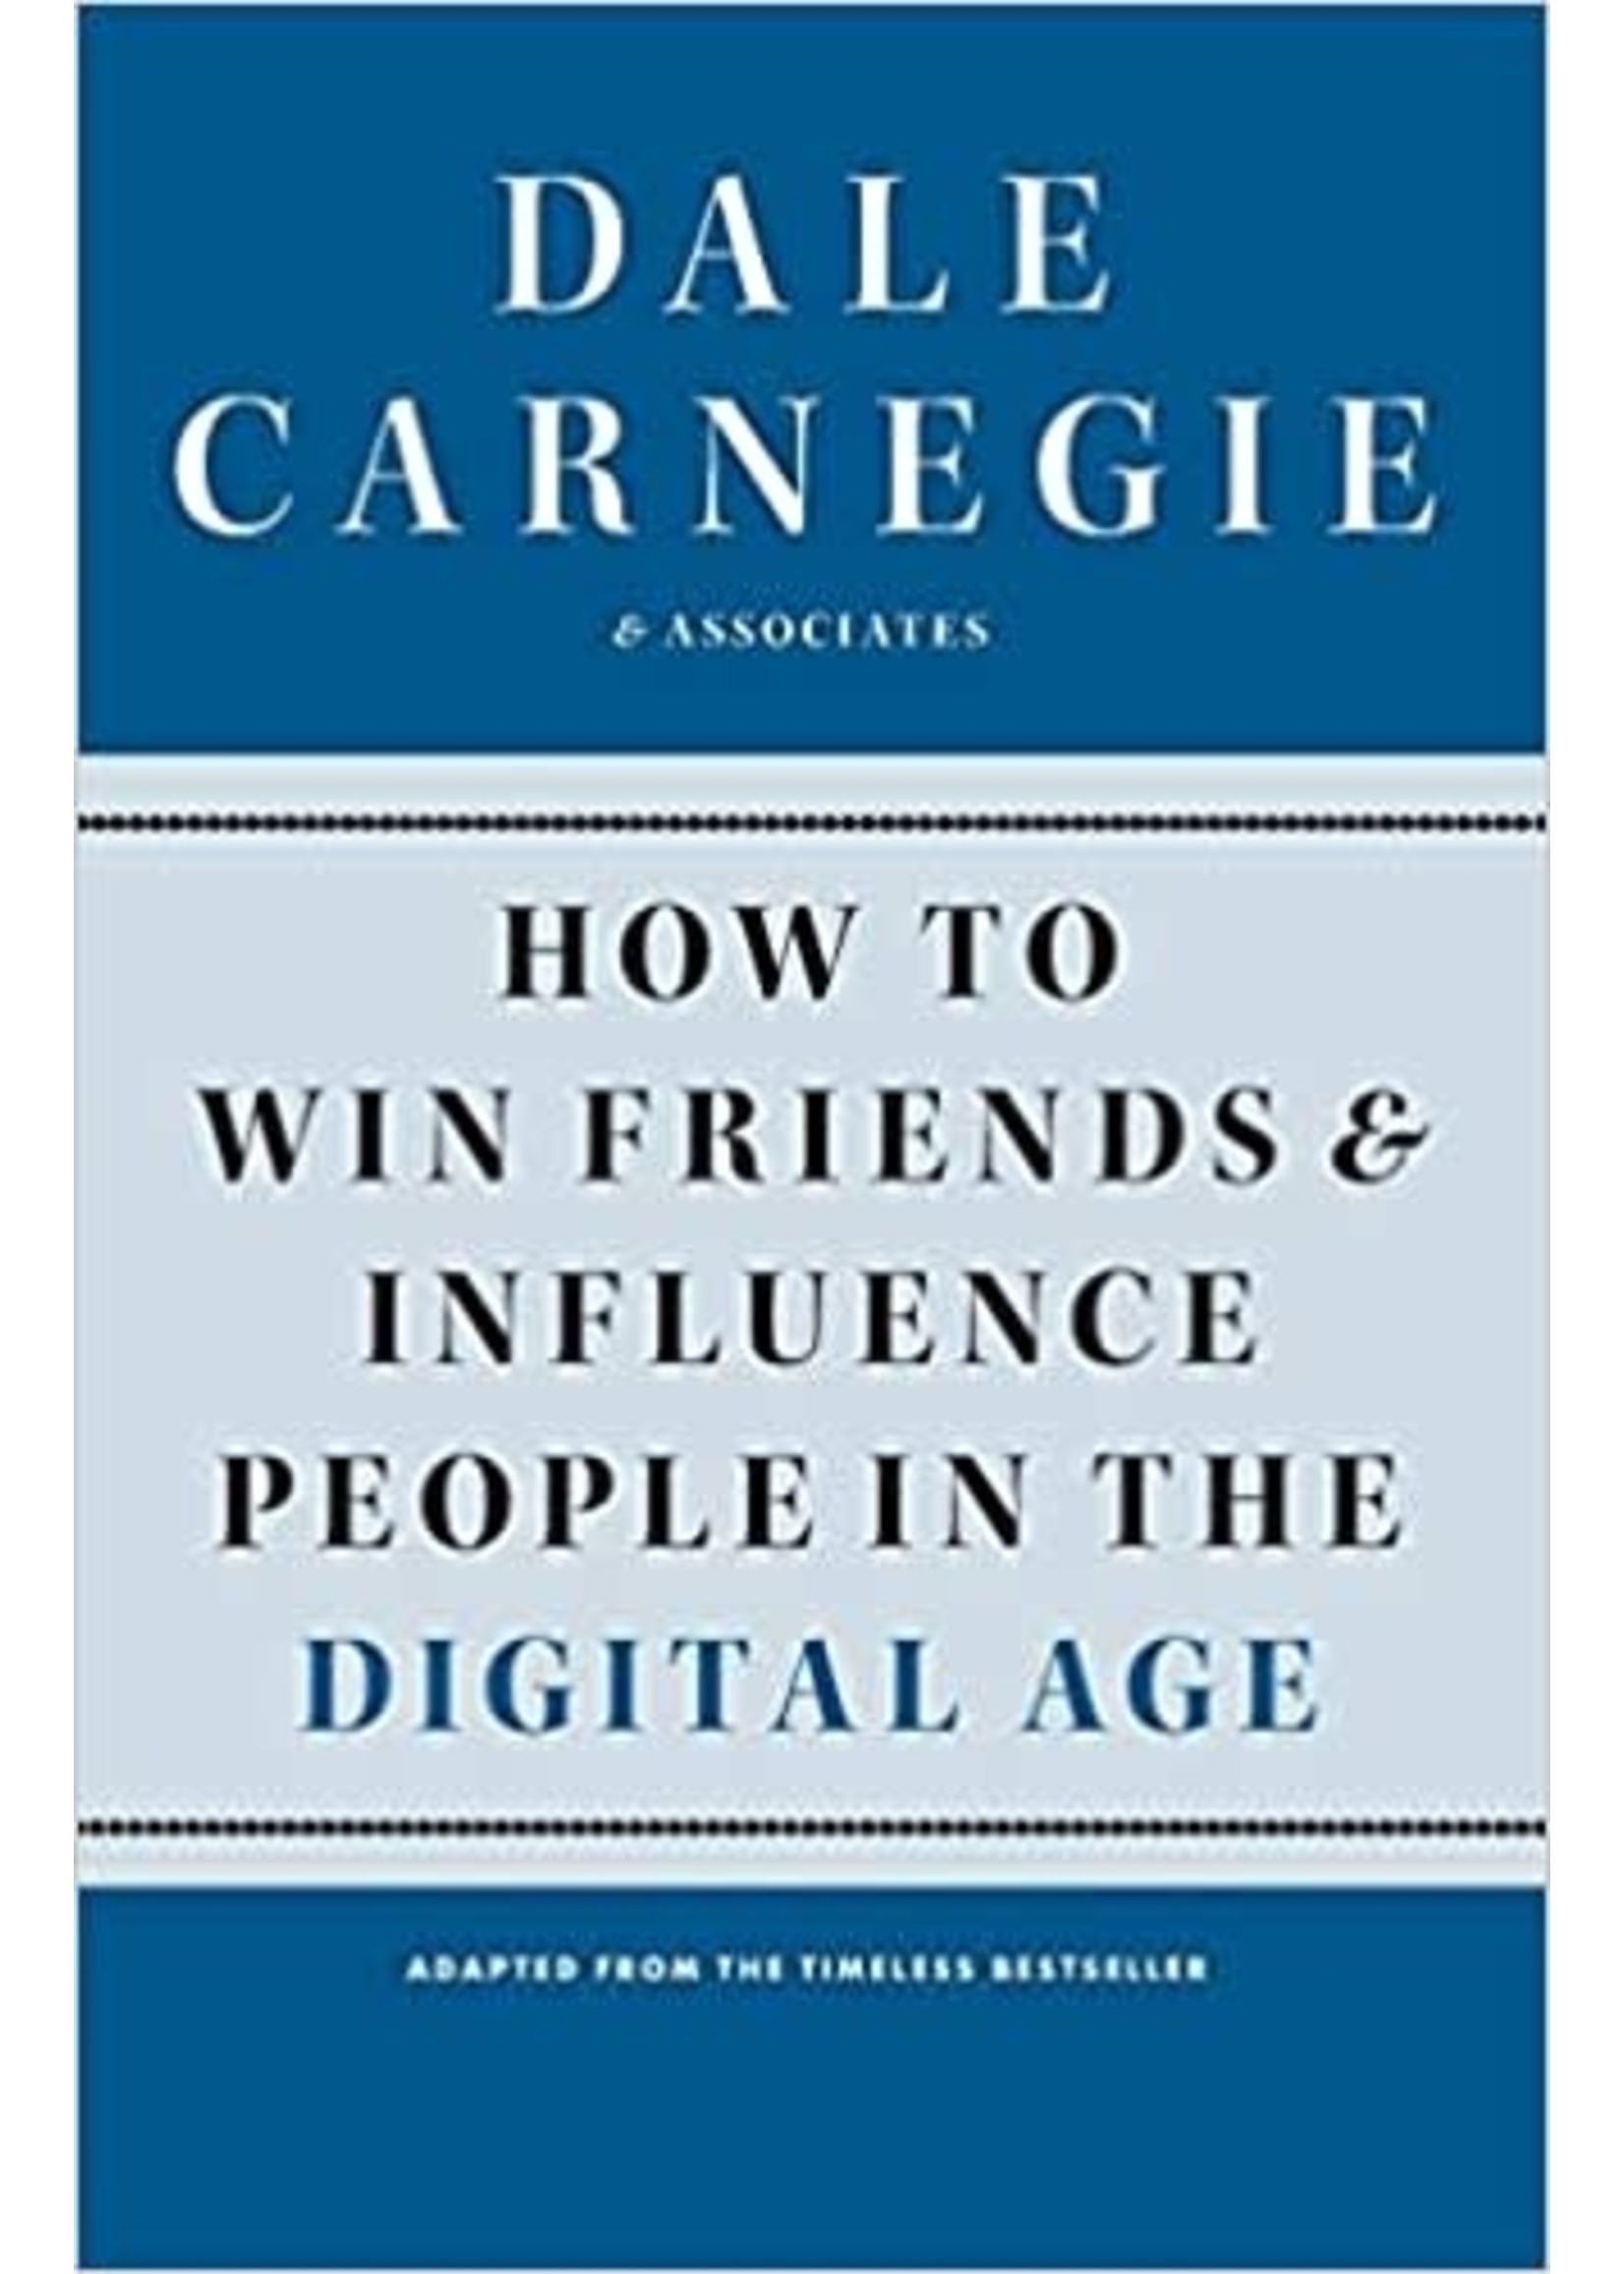 MG464 HOW TO WIN FRIENDS AND INFLUENCE PEOPLE(RENTAL)